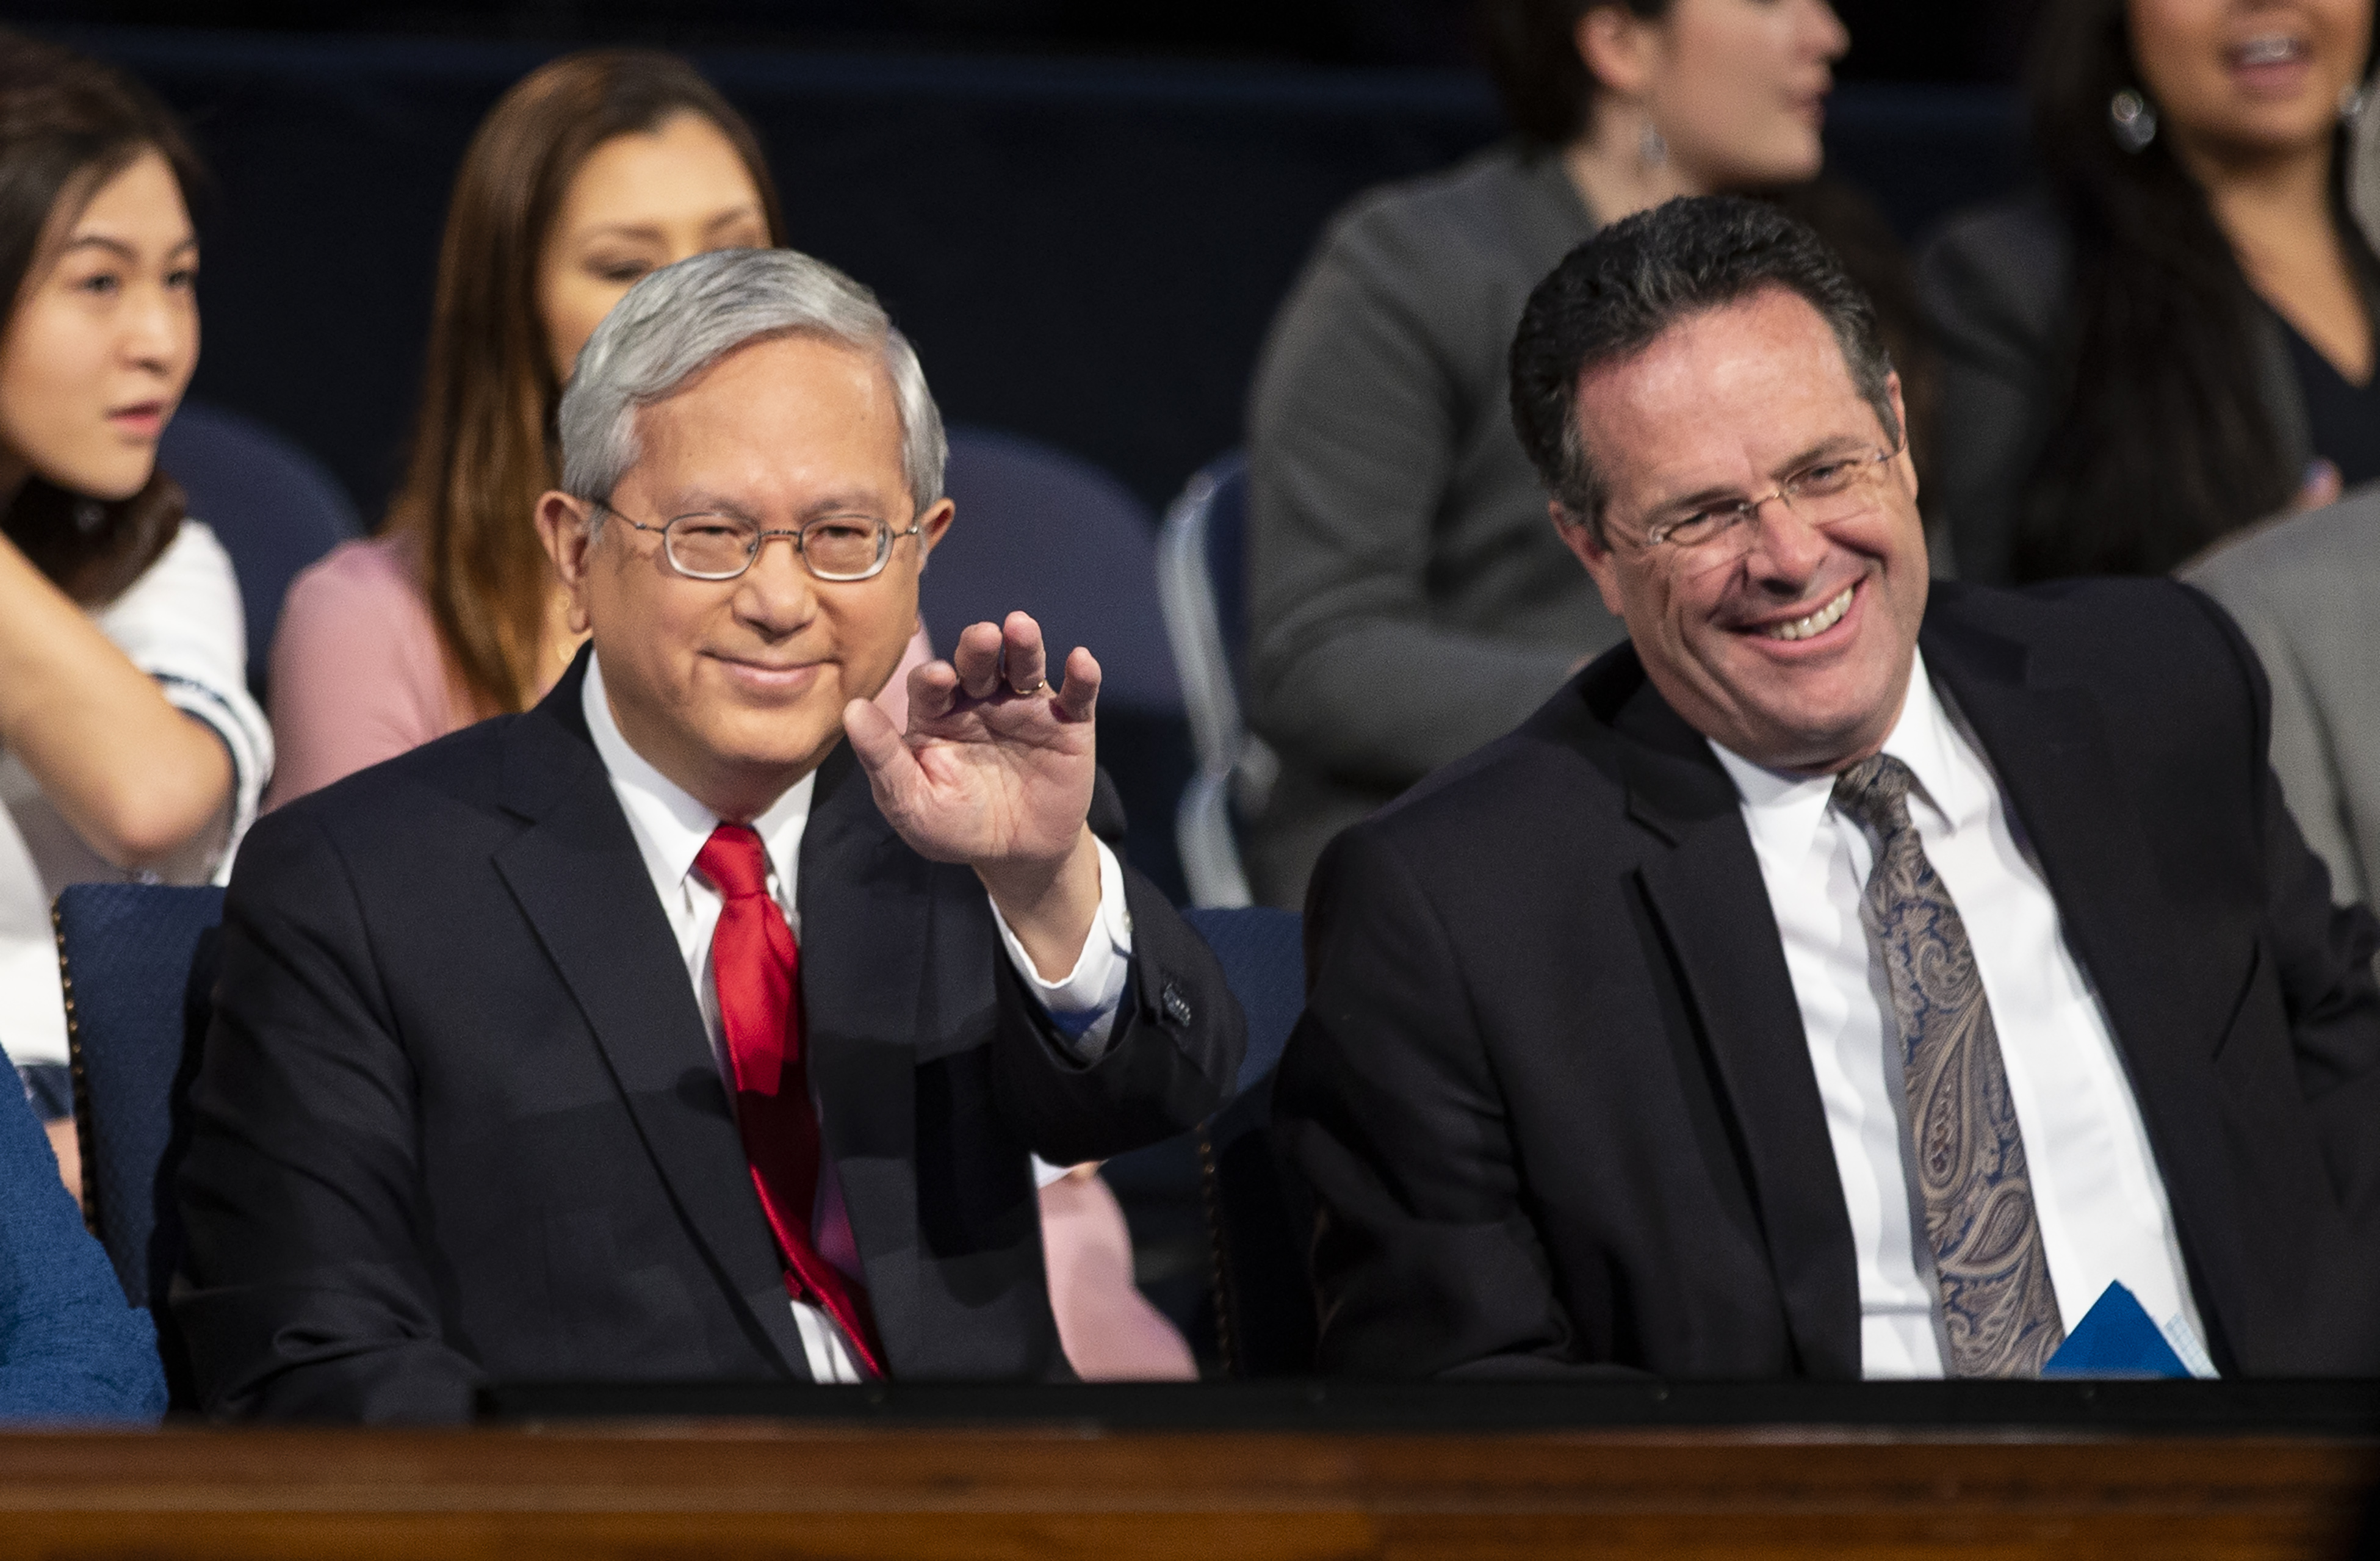 Elder Gerrit W. Gong of the Quorum of the Twelve Apostles waves to someone in the crowd prior to speaking at a BYU campus devotional on Tuesday, Oct. 16, 2018.